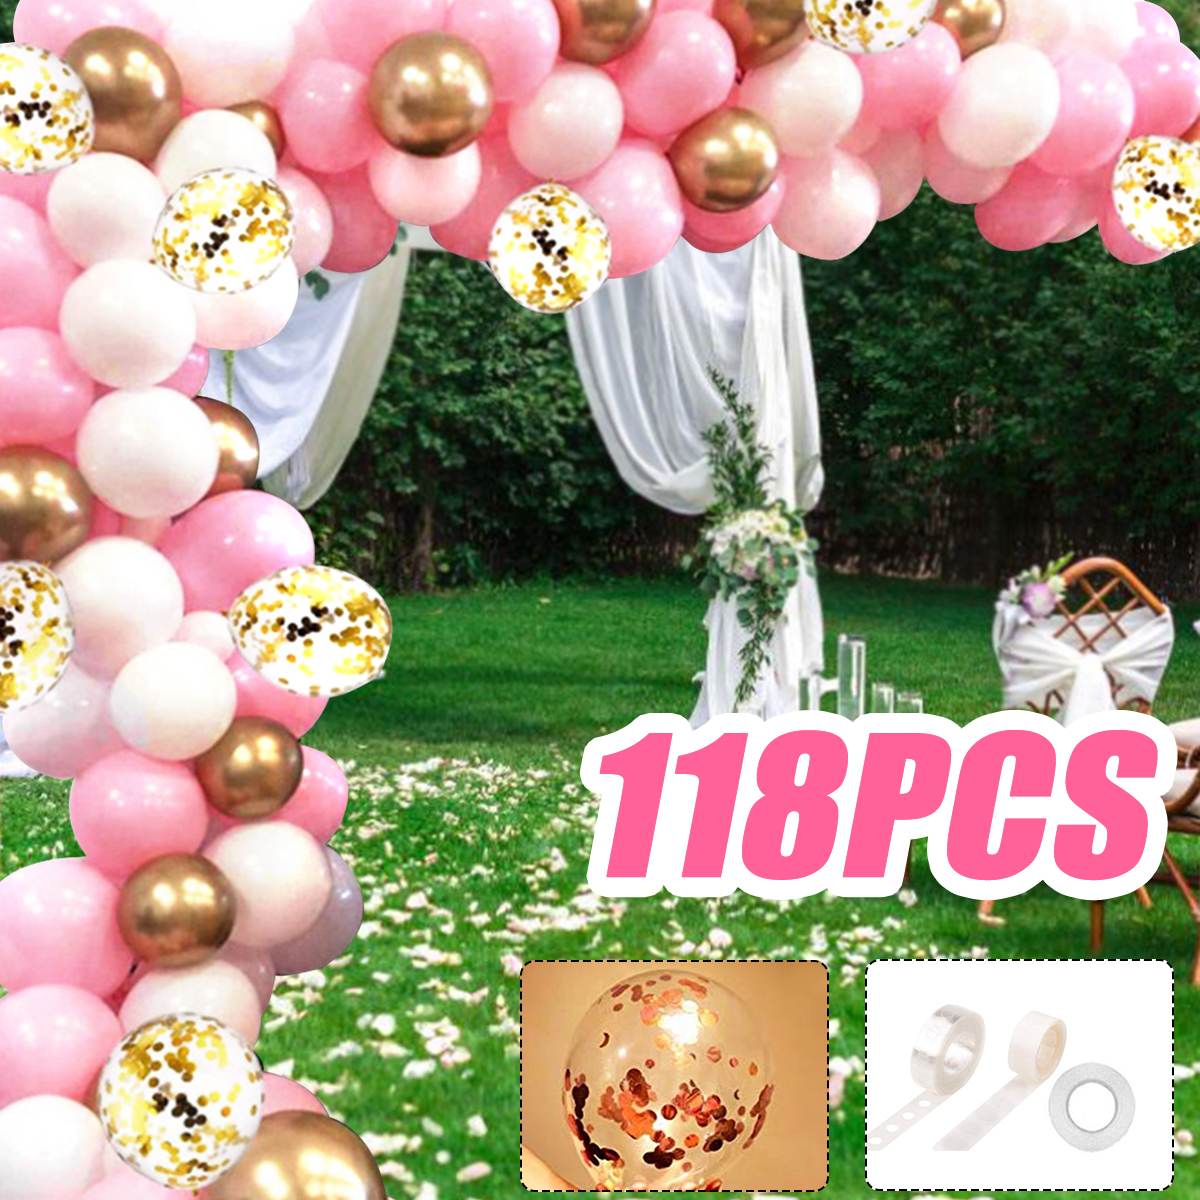 118pcs Pink Balloon Garland Arch Baby Shower Birthday Party Decoration Wedding Ebay